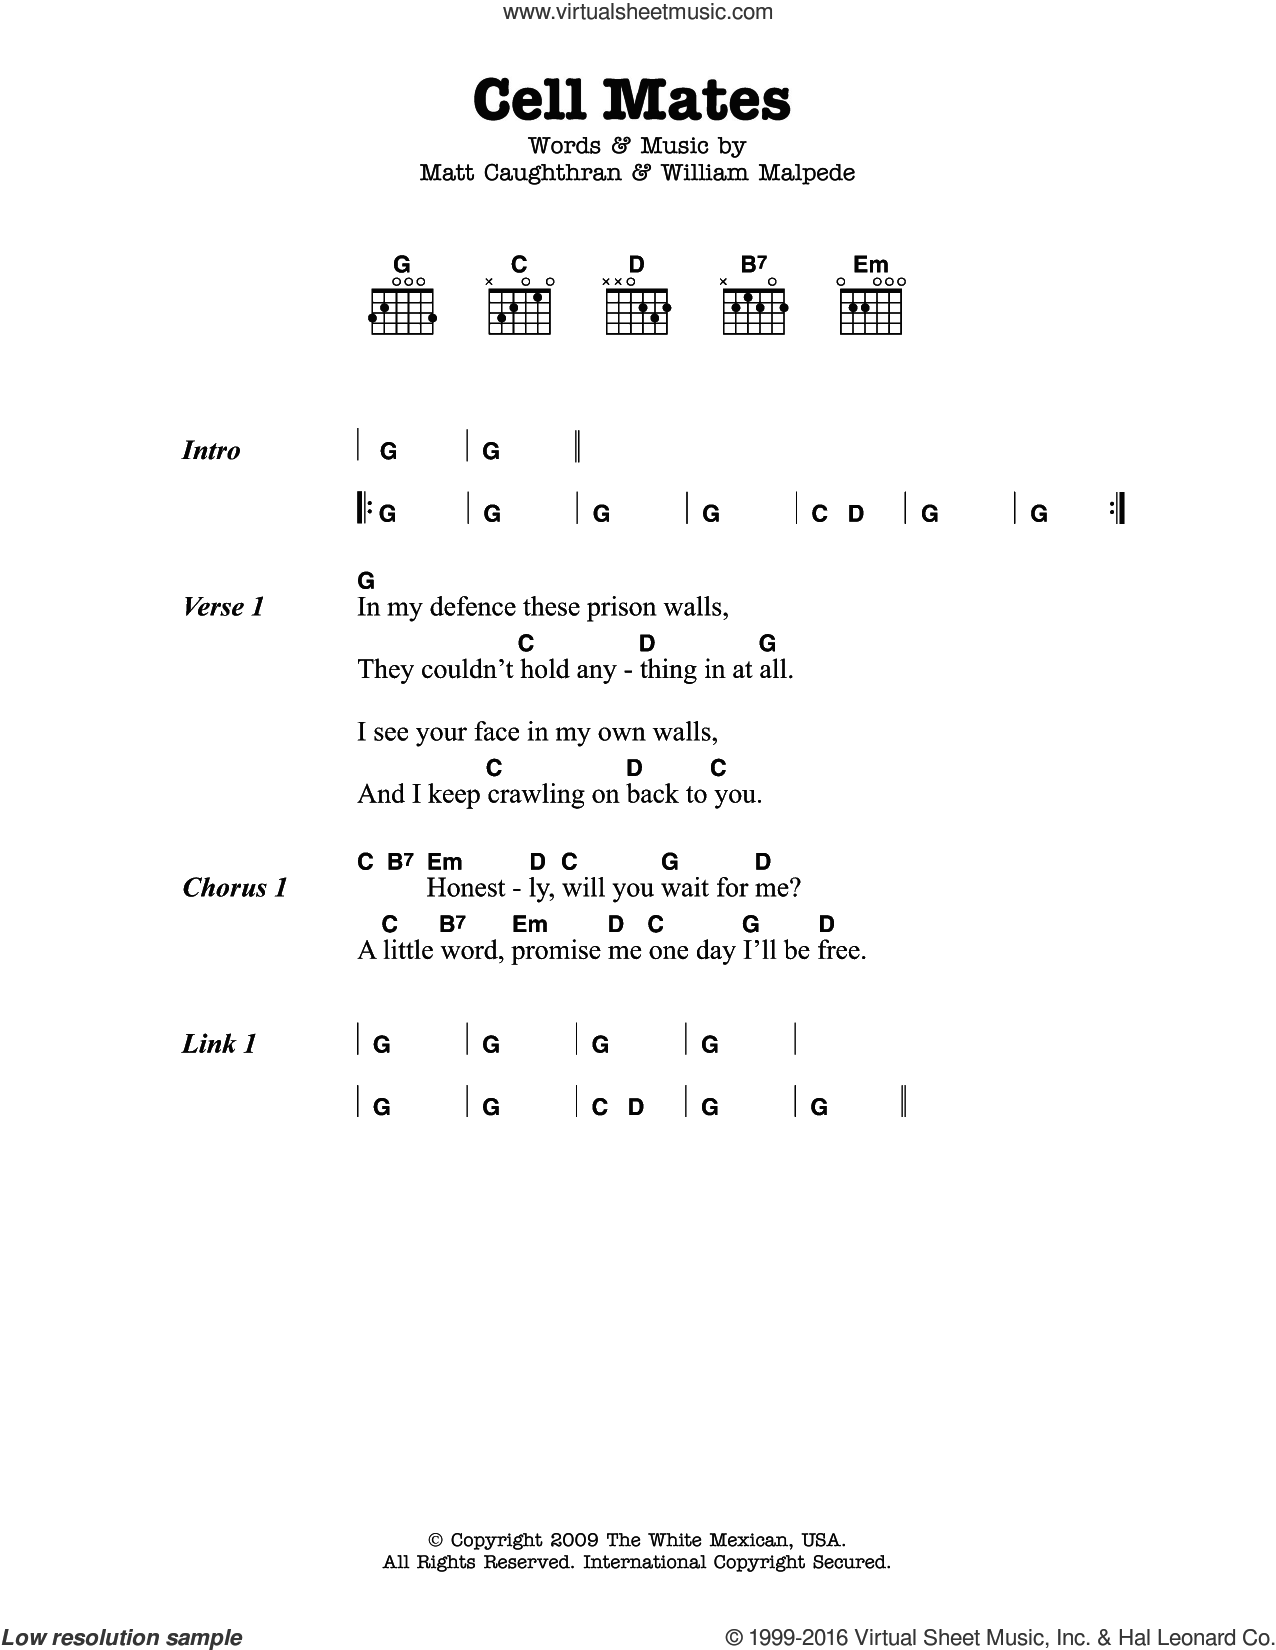 Cell Mates sheet music for guitar (chords) by William Malpede